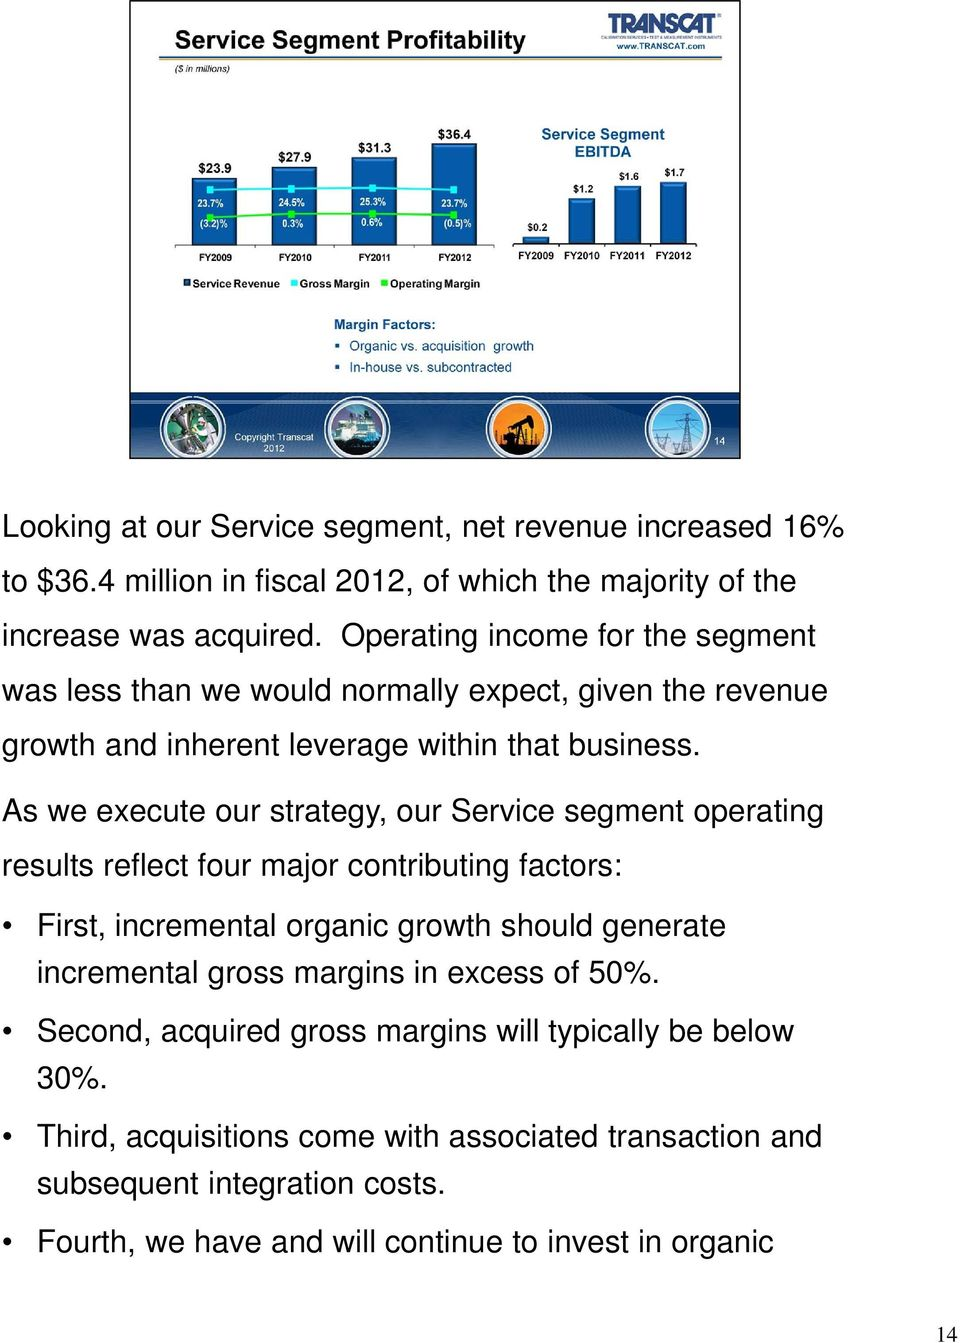 As we execute our strategy, our Service segment operating results reflect four major contributing factors: First, incremental organic growth should generate incremental